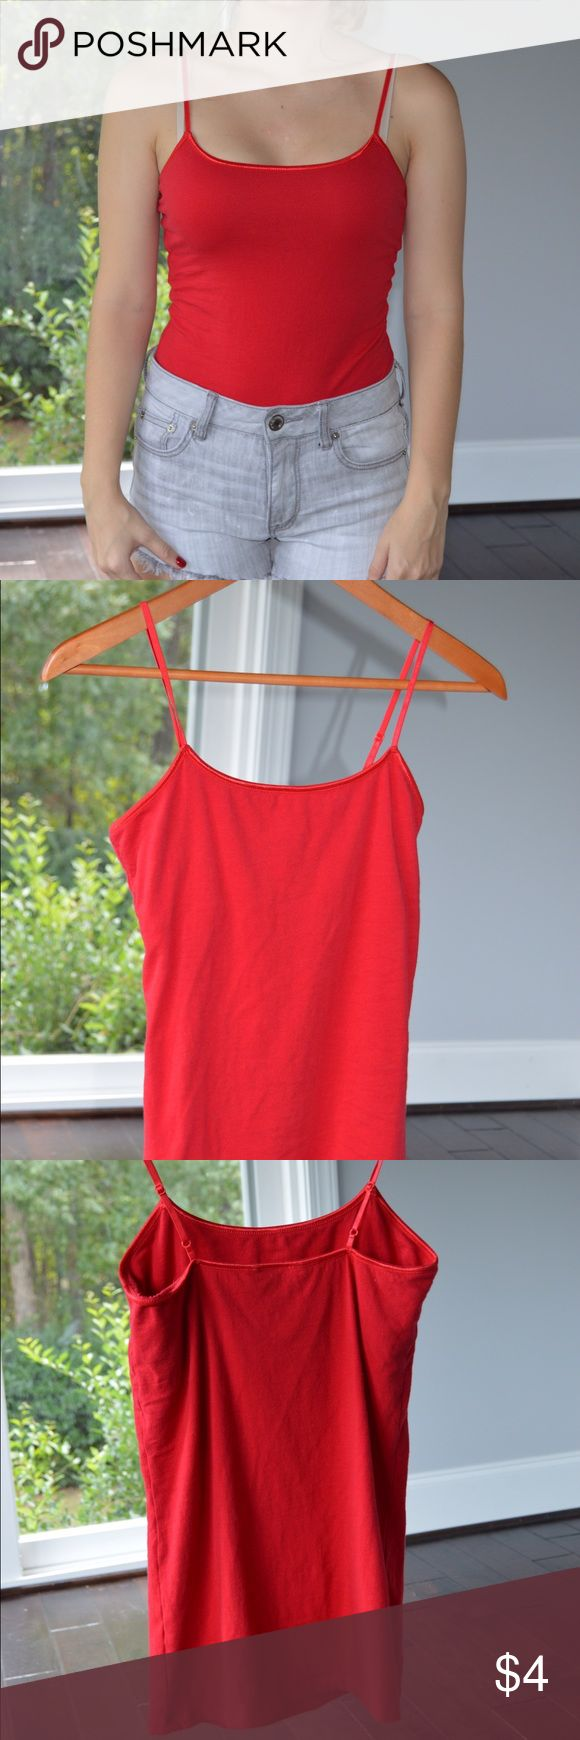 Red Cami Rue 21 red cami. Rue 21 Tops Tank Tops